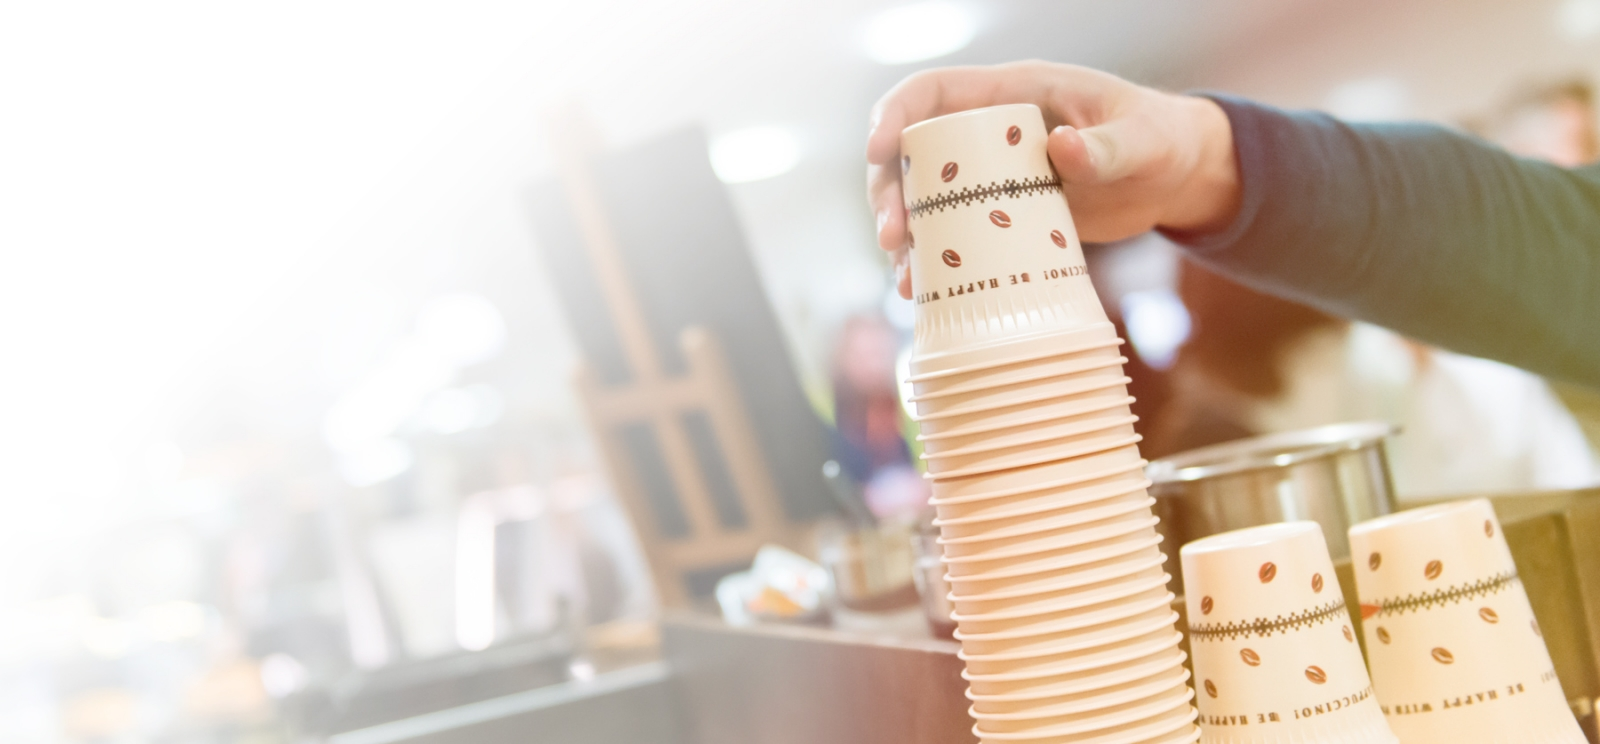 Man taking a new plastic cup from a stack in a kitchen space